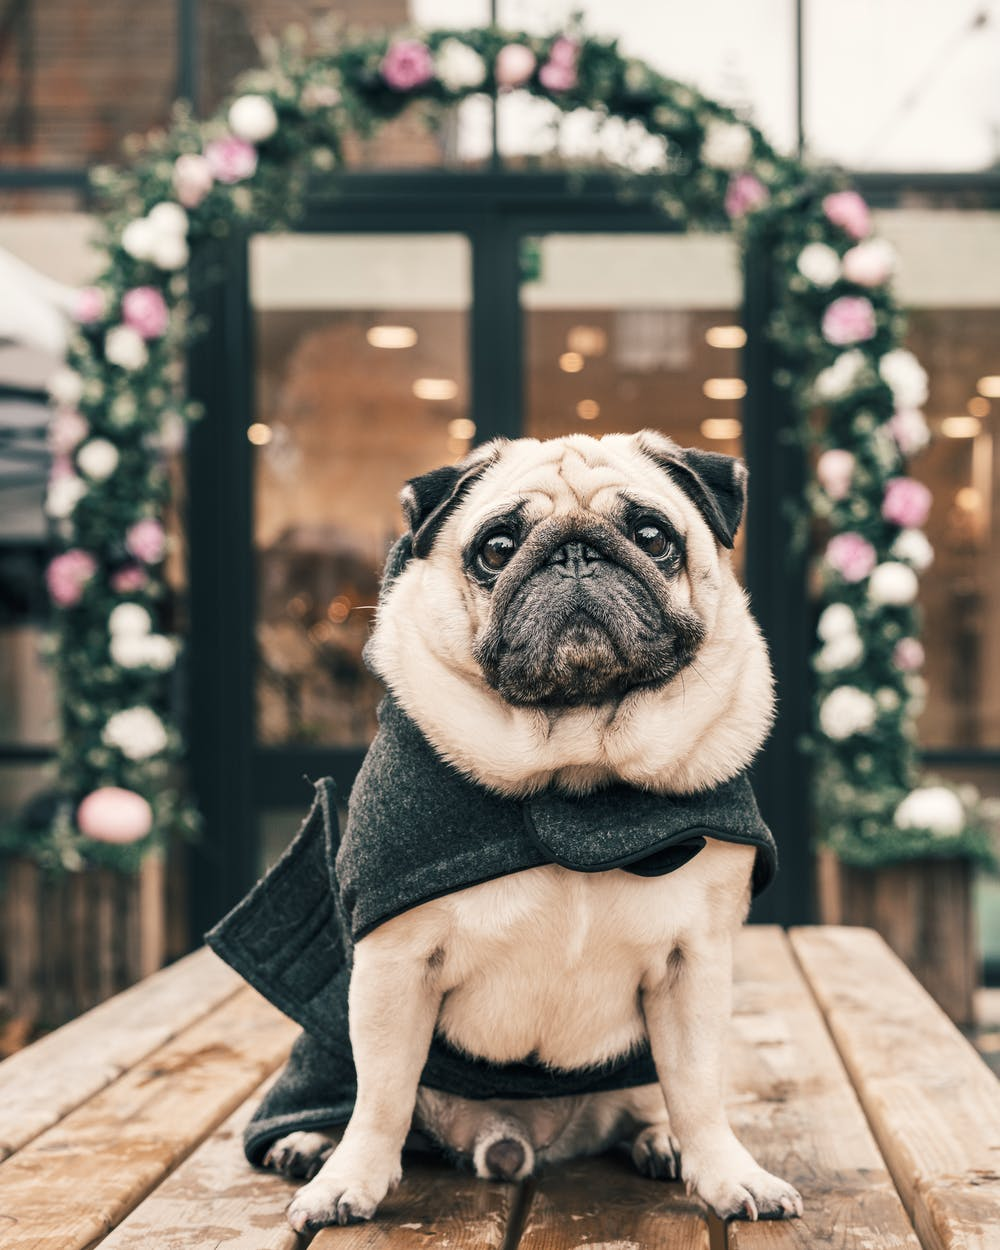 A dog sitting in a wooden table. | Photo: Pexels